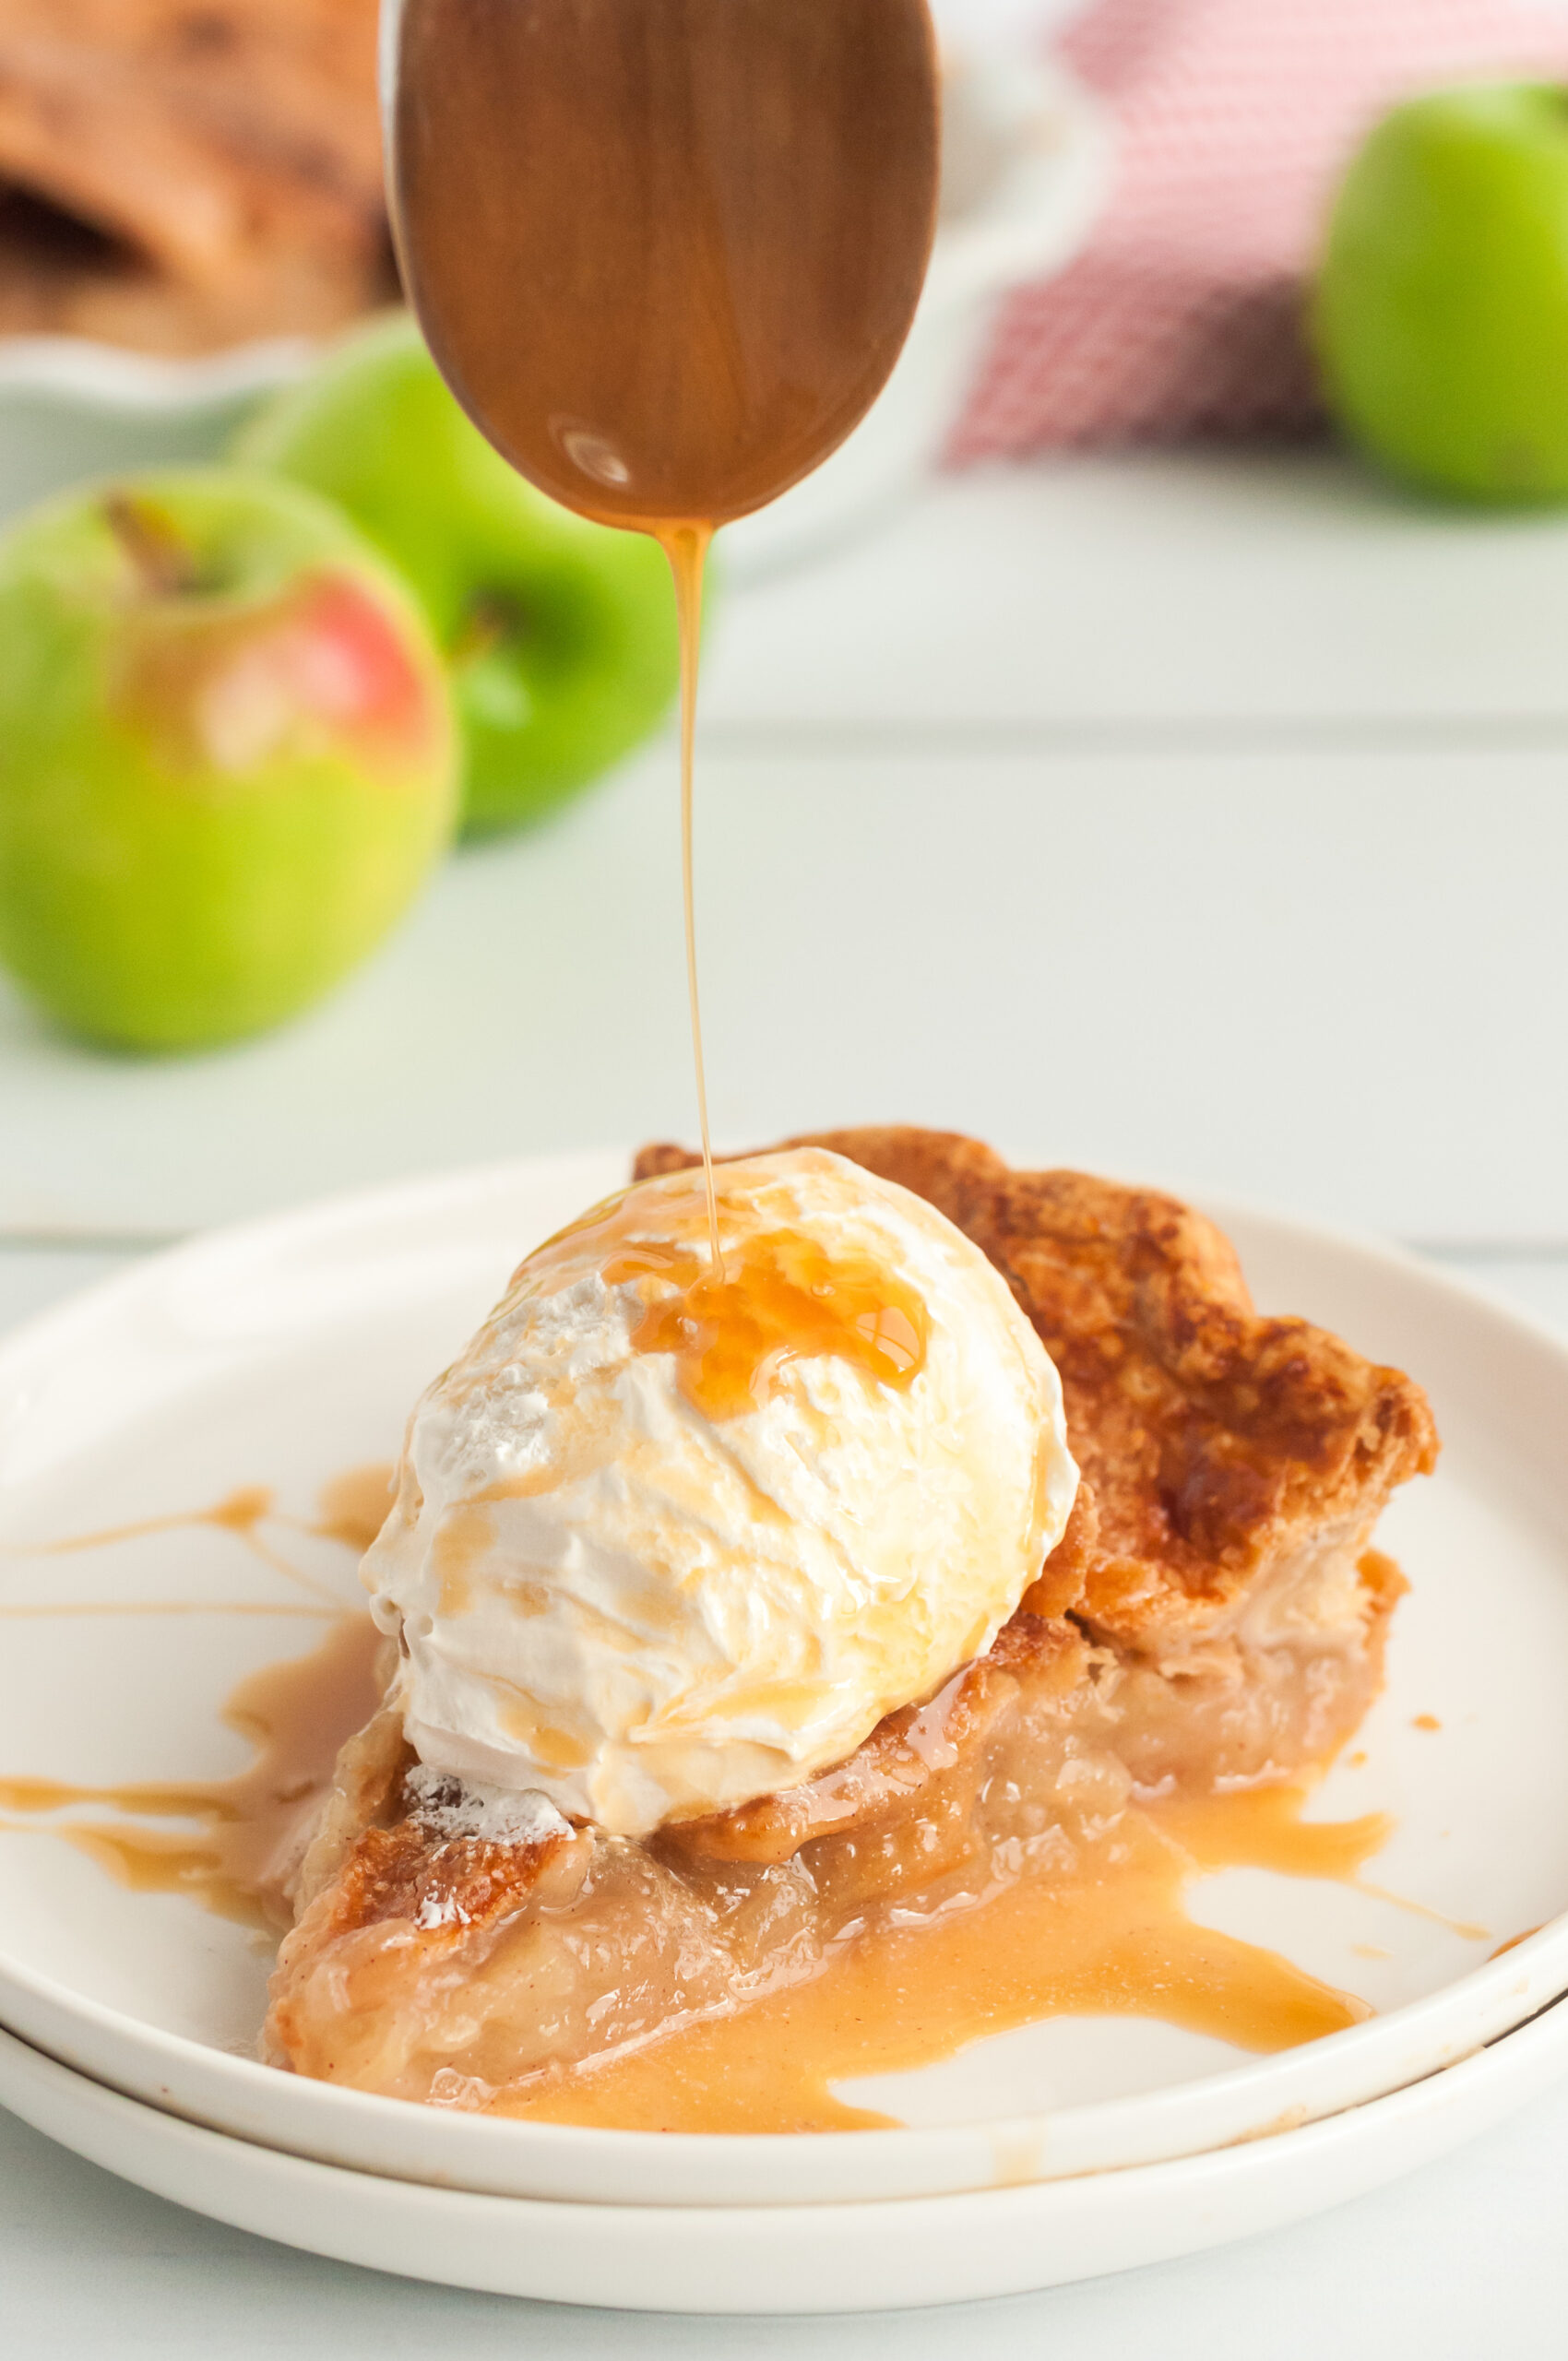 apple pie slice on a plate with caramel being drizzled on top